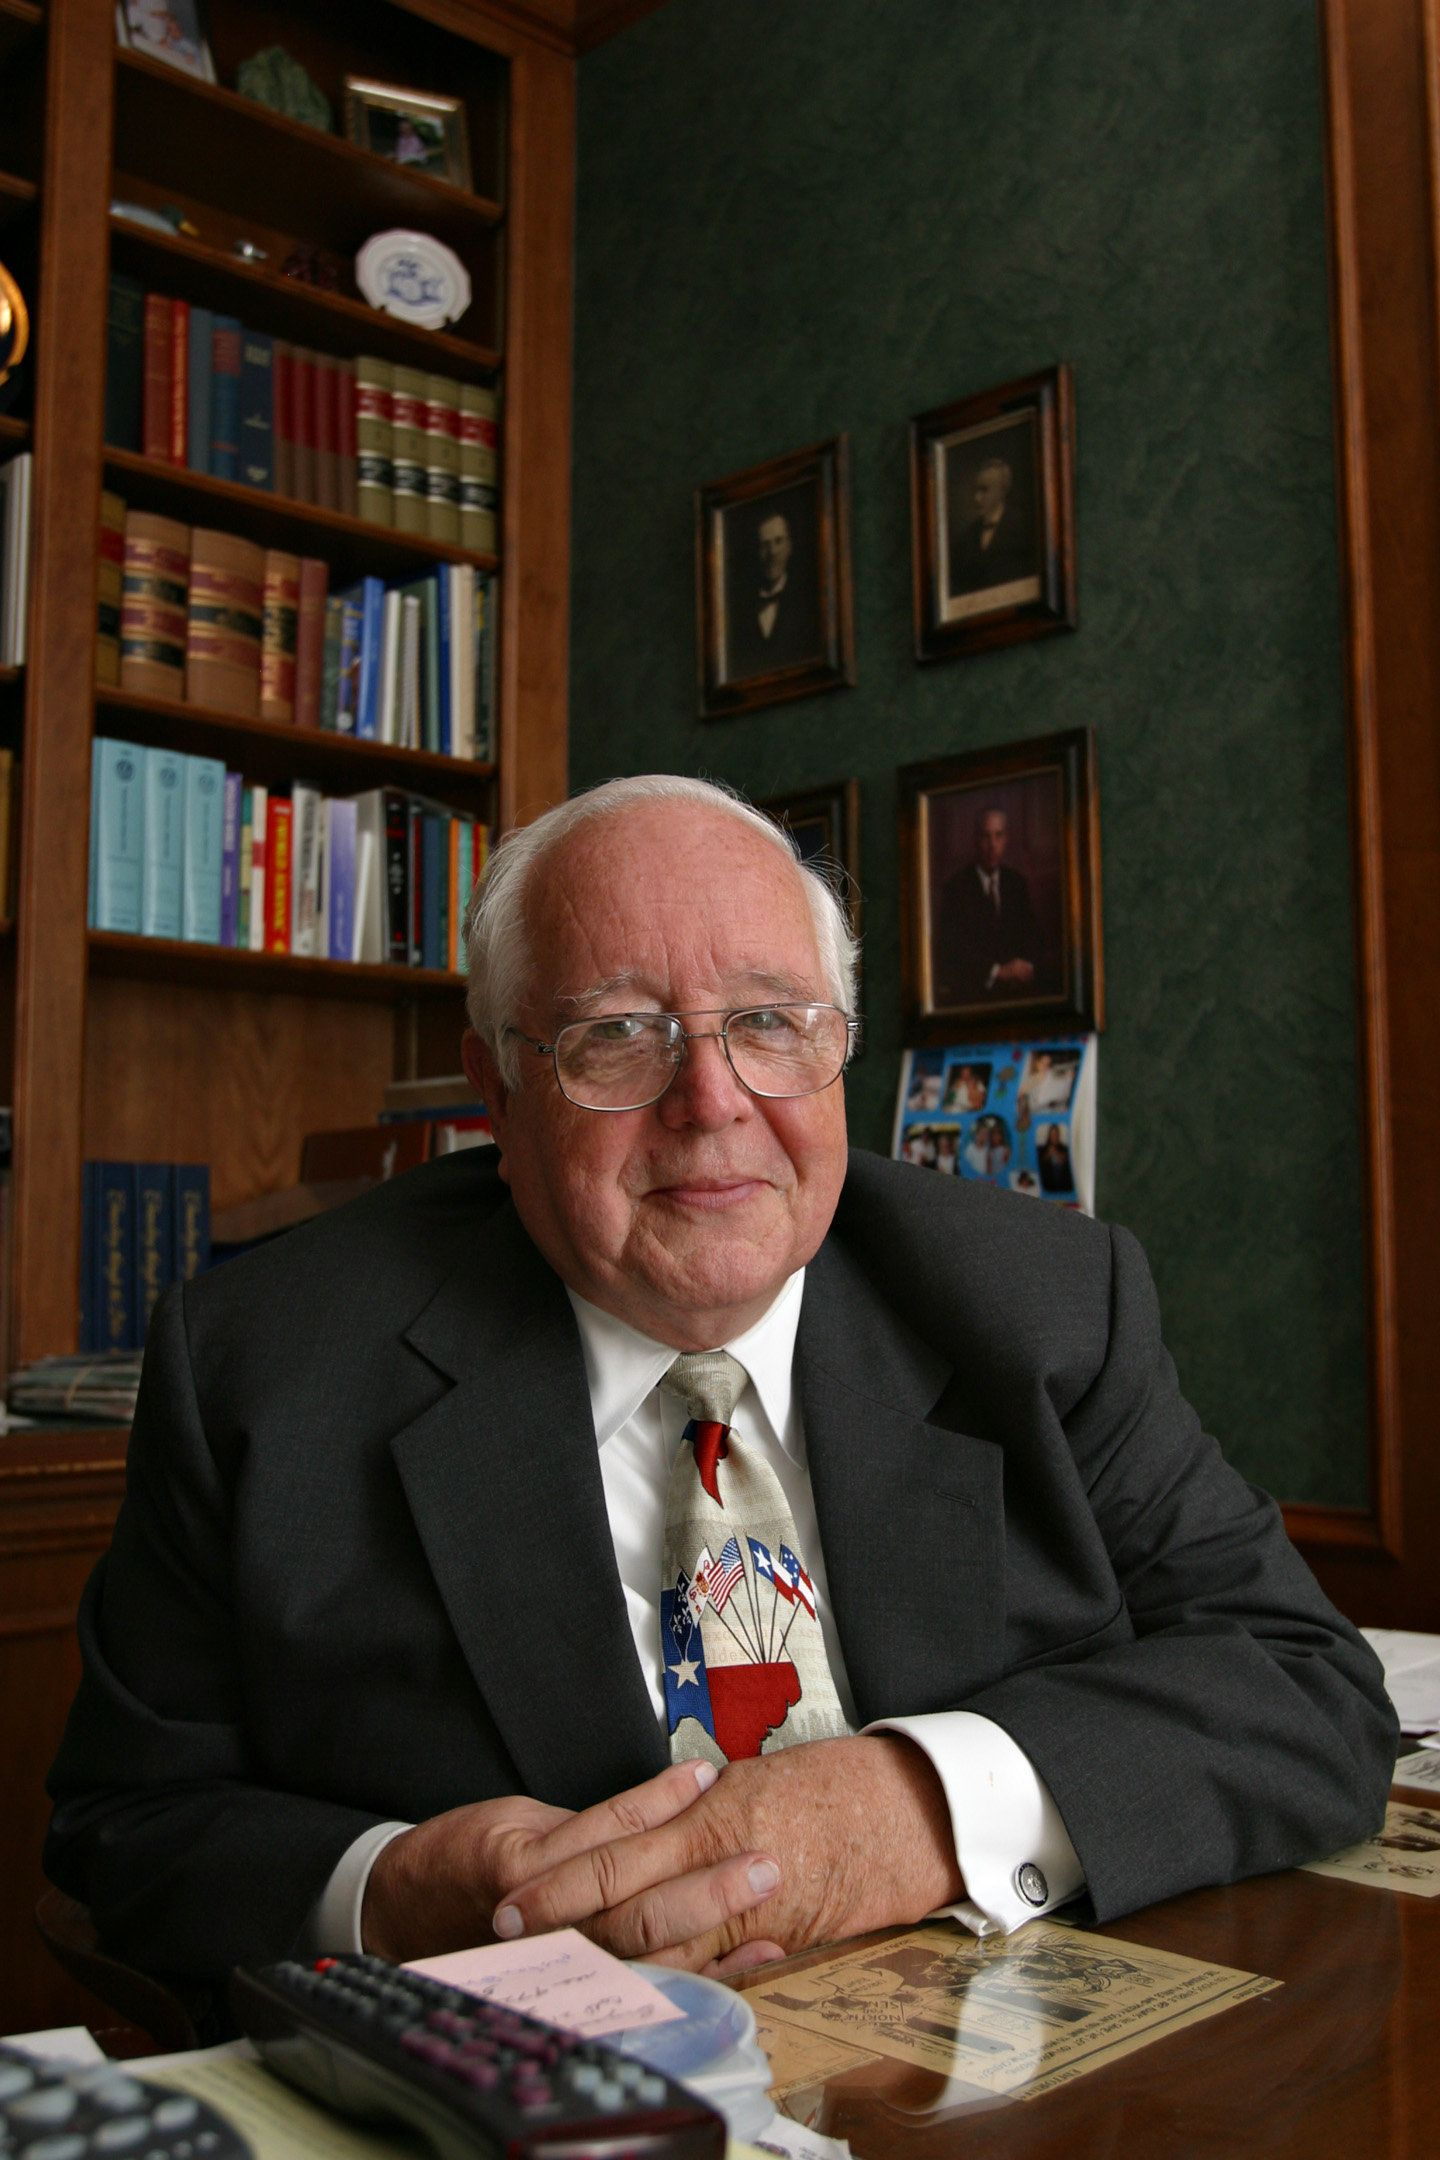 Paul Pressler is a former justice on Texas' 14th Court of Appeals and a prominent figure in the Southern Baptist Convent